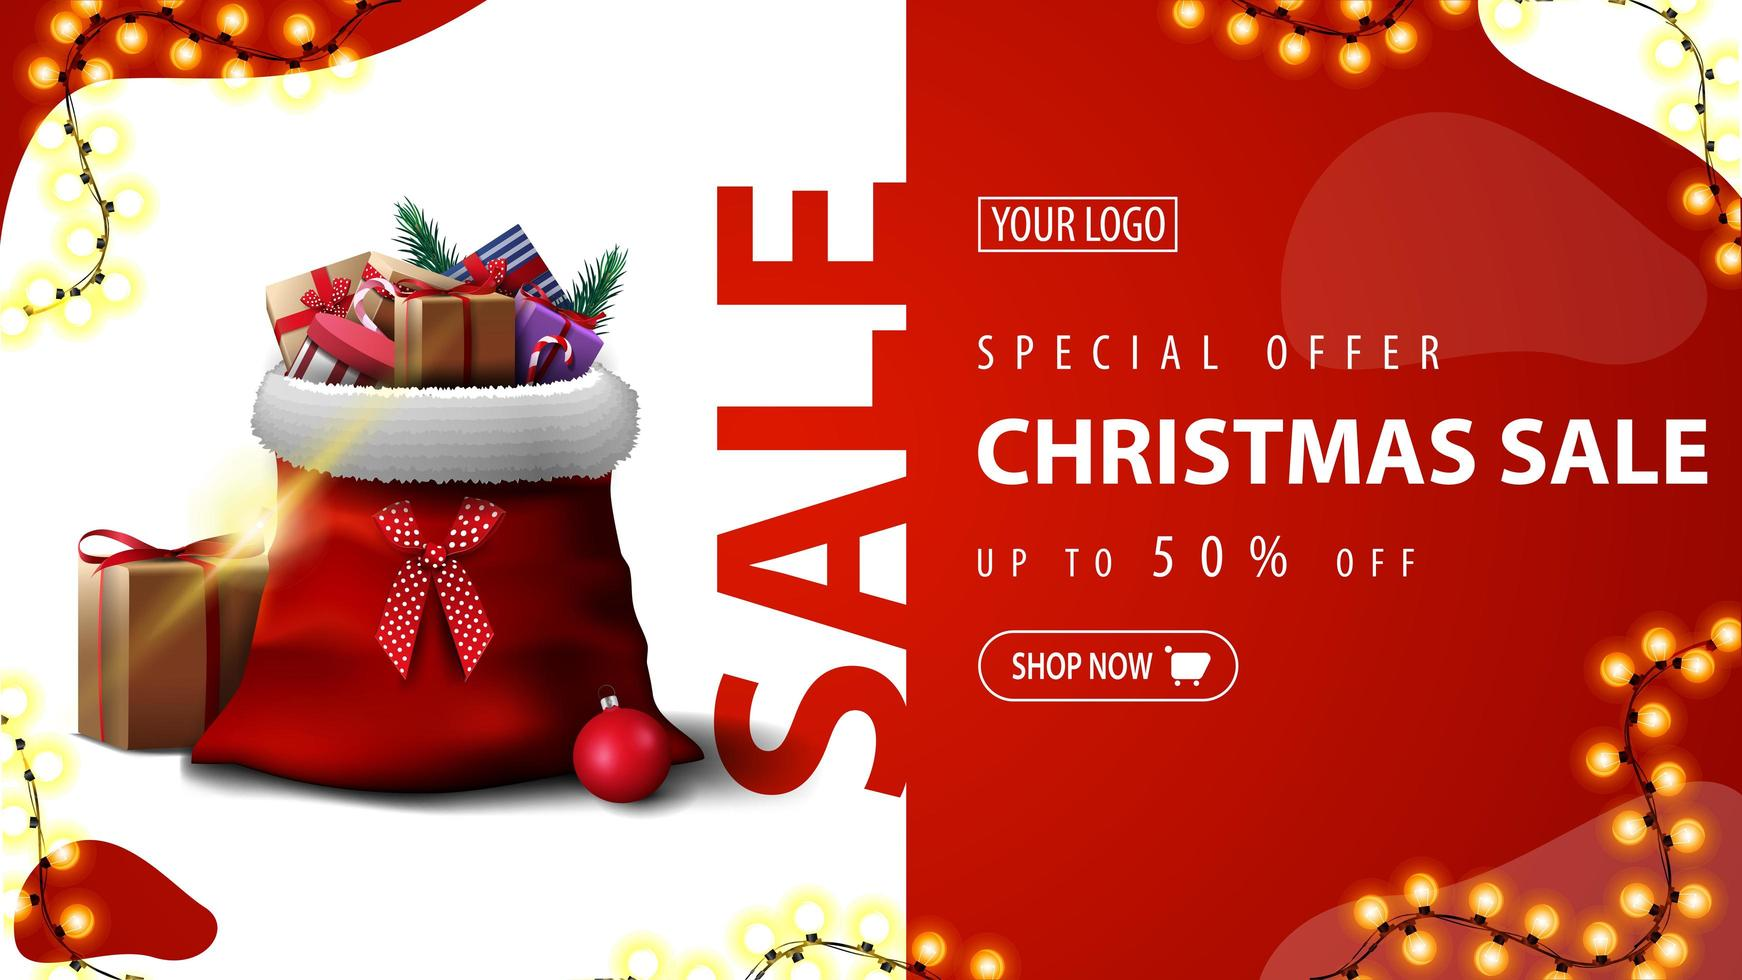 Special offer, Christmas sale, up to 50 off, green discount banner with garland and Santa Claus bag with presents vector